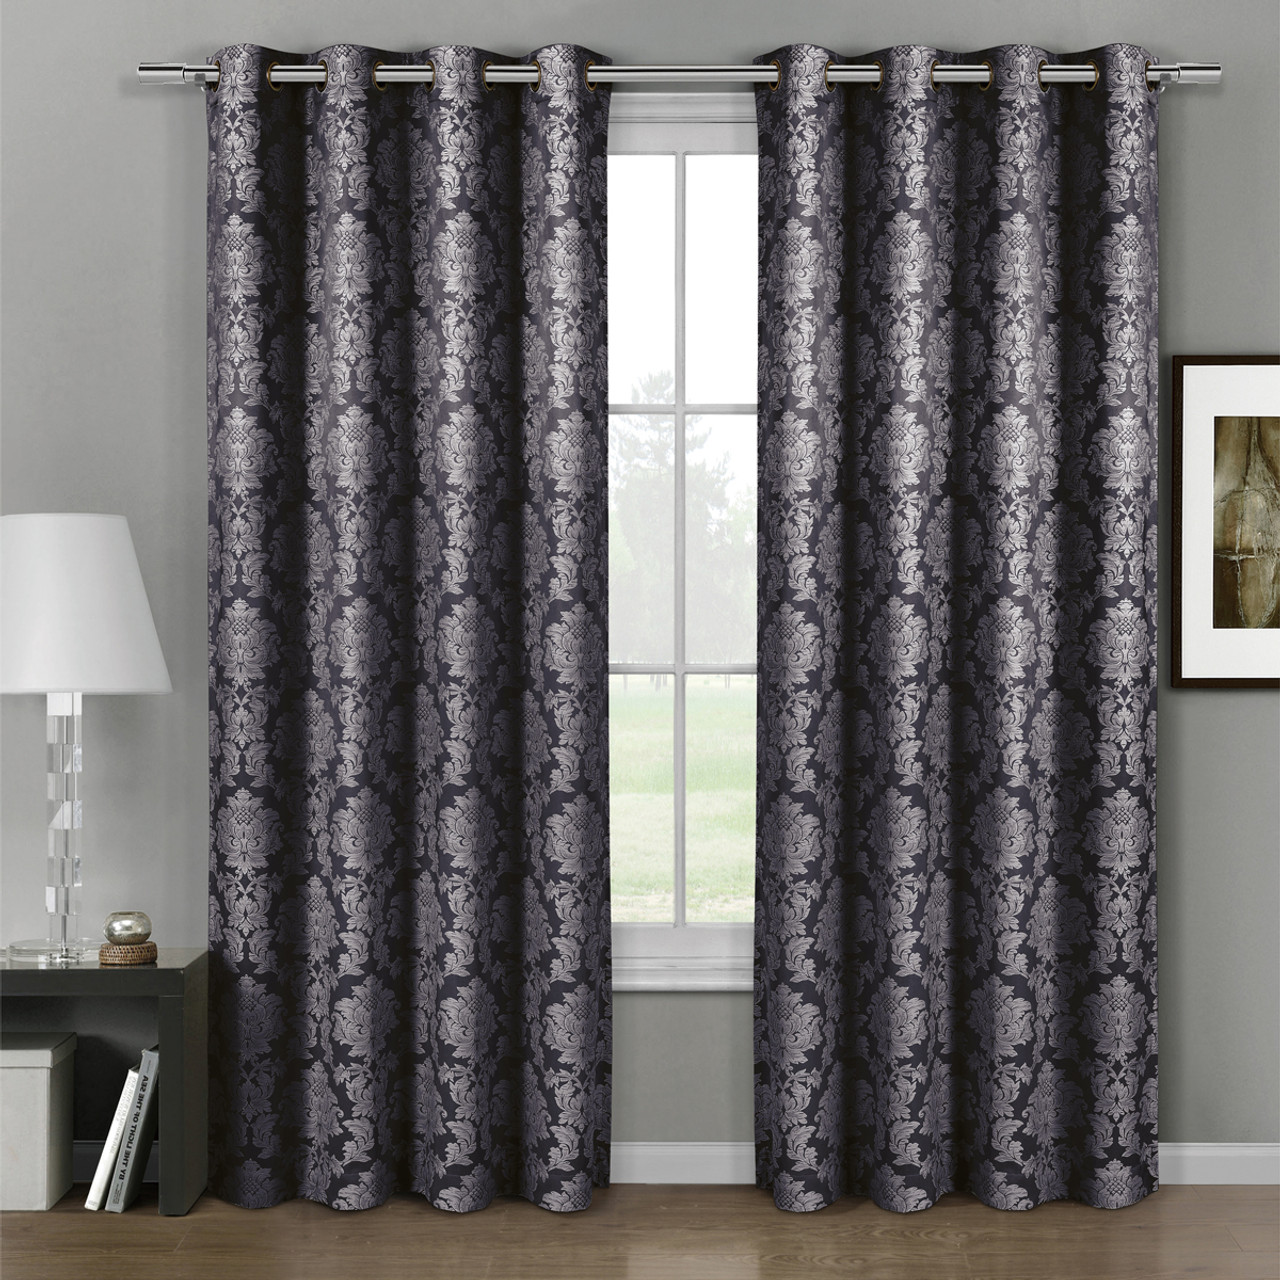 ... Aryanna Jacquard Floral Curtains With Top Grommets (Set Of 2)  Charcoal  ...